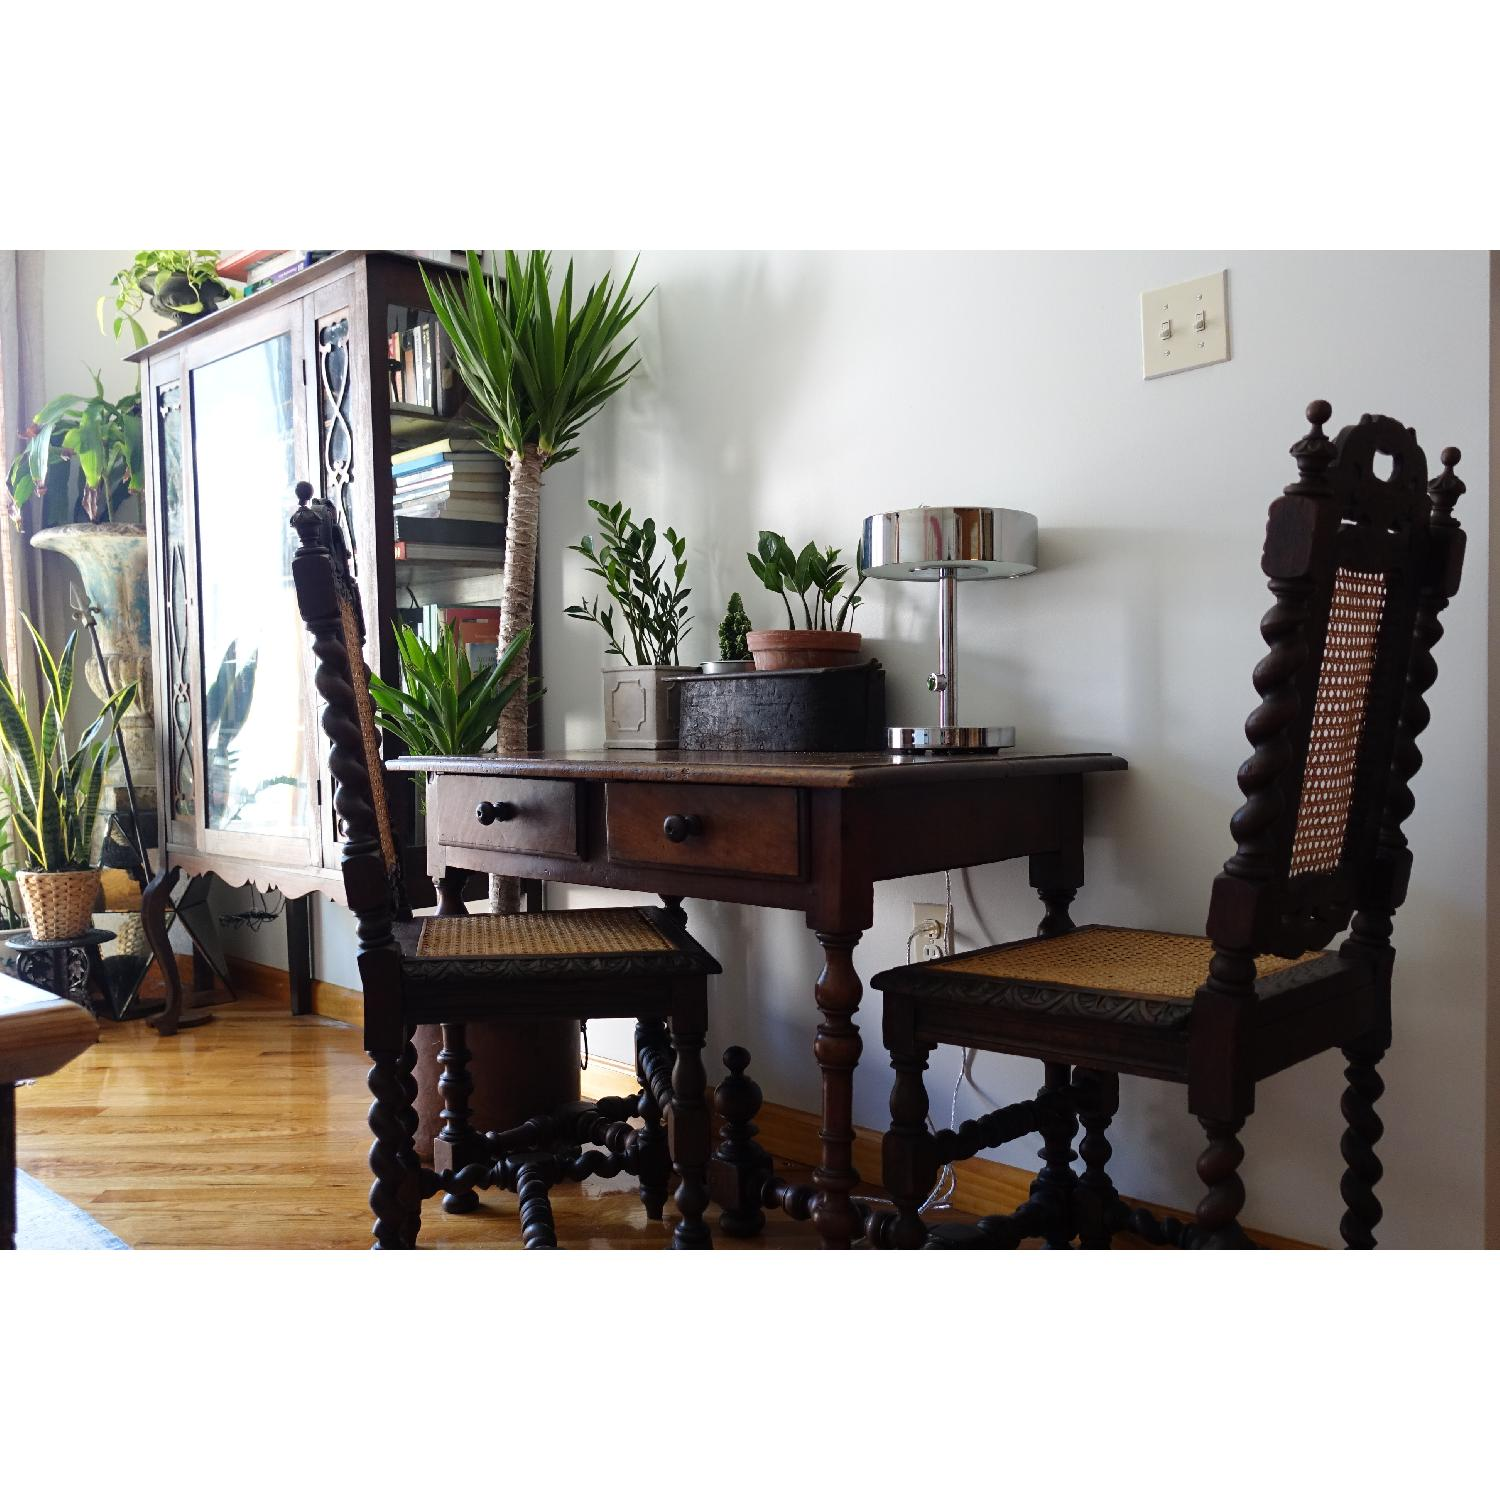 Antique French Colonial 19th Century Chair - image-11